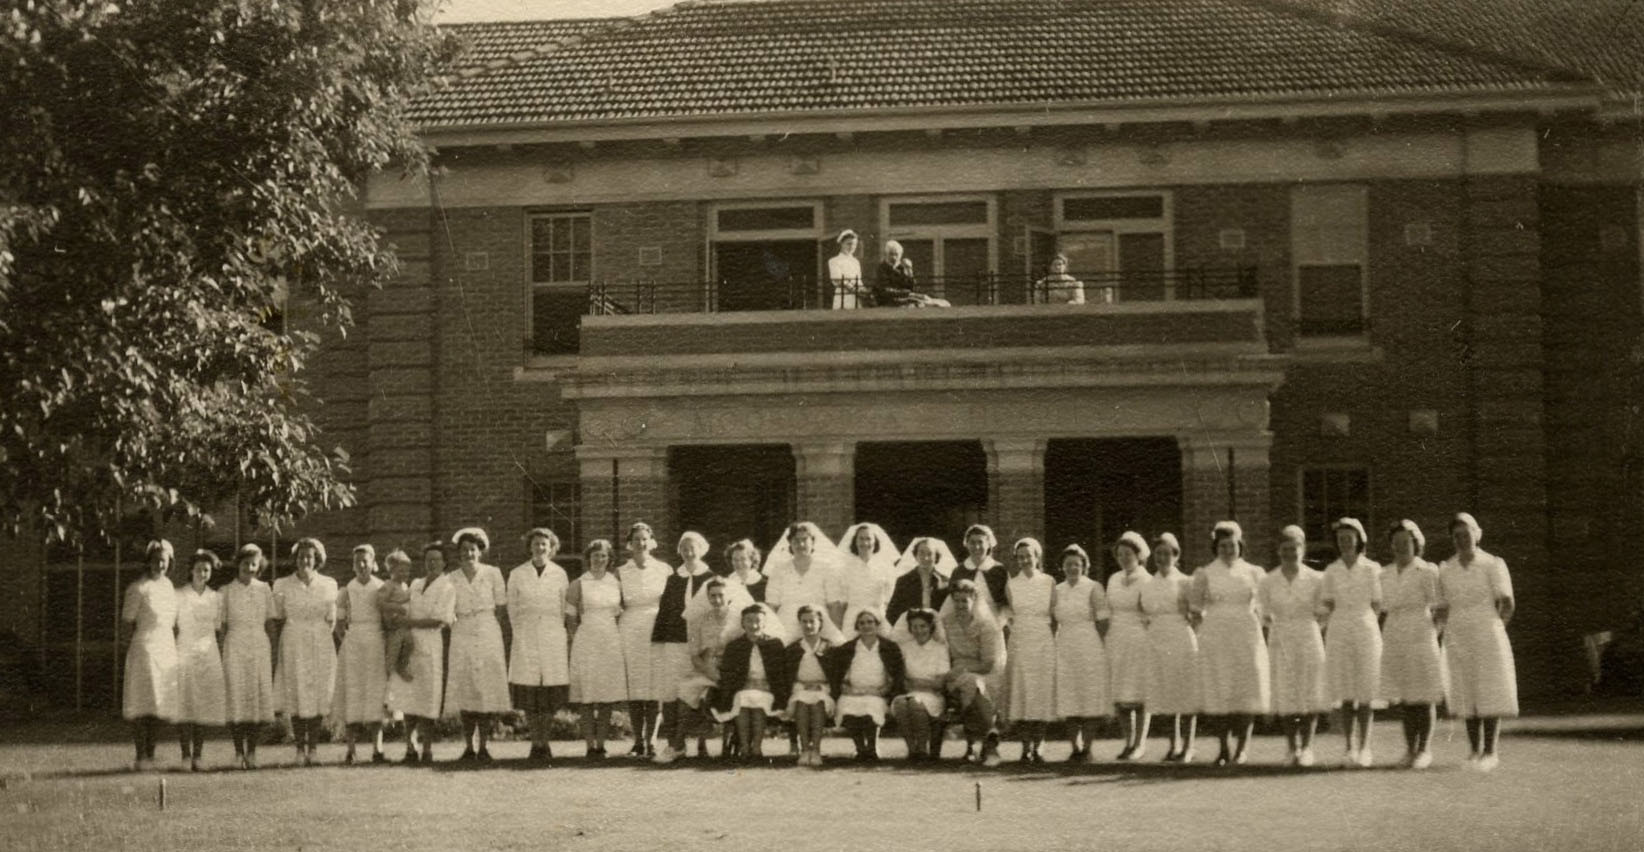 Mooroopna_Hospital_Staff_1950s.jpg